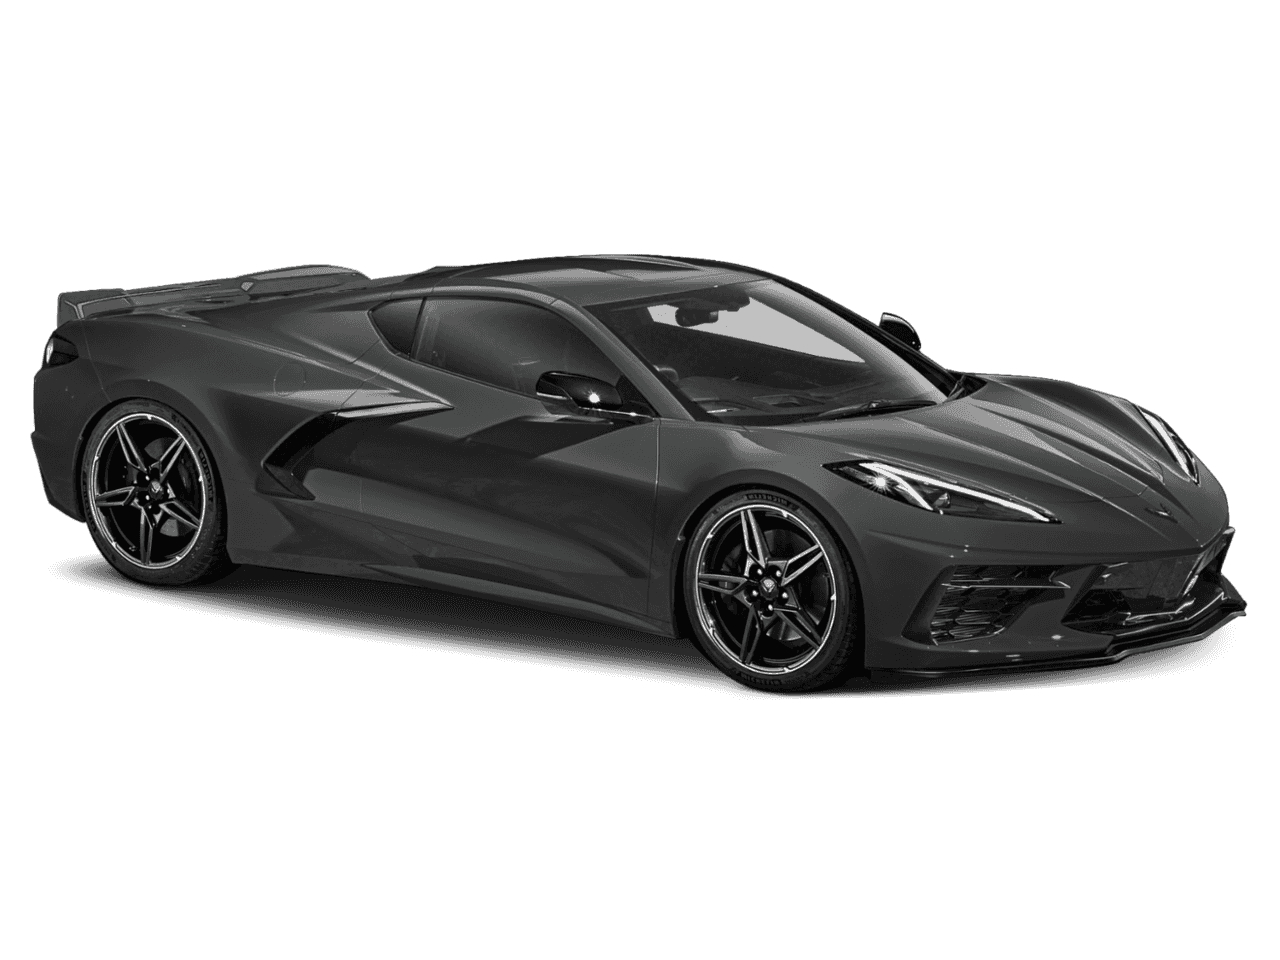 New 2020 Chevrolet Corvette 3LT